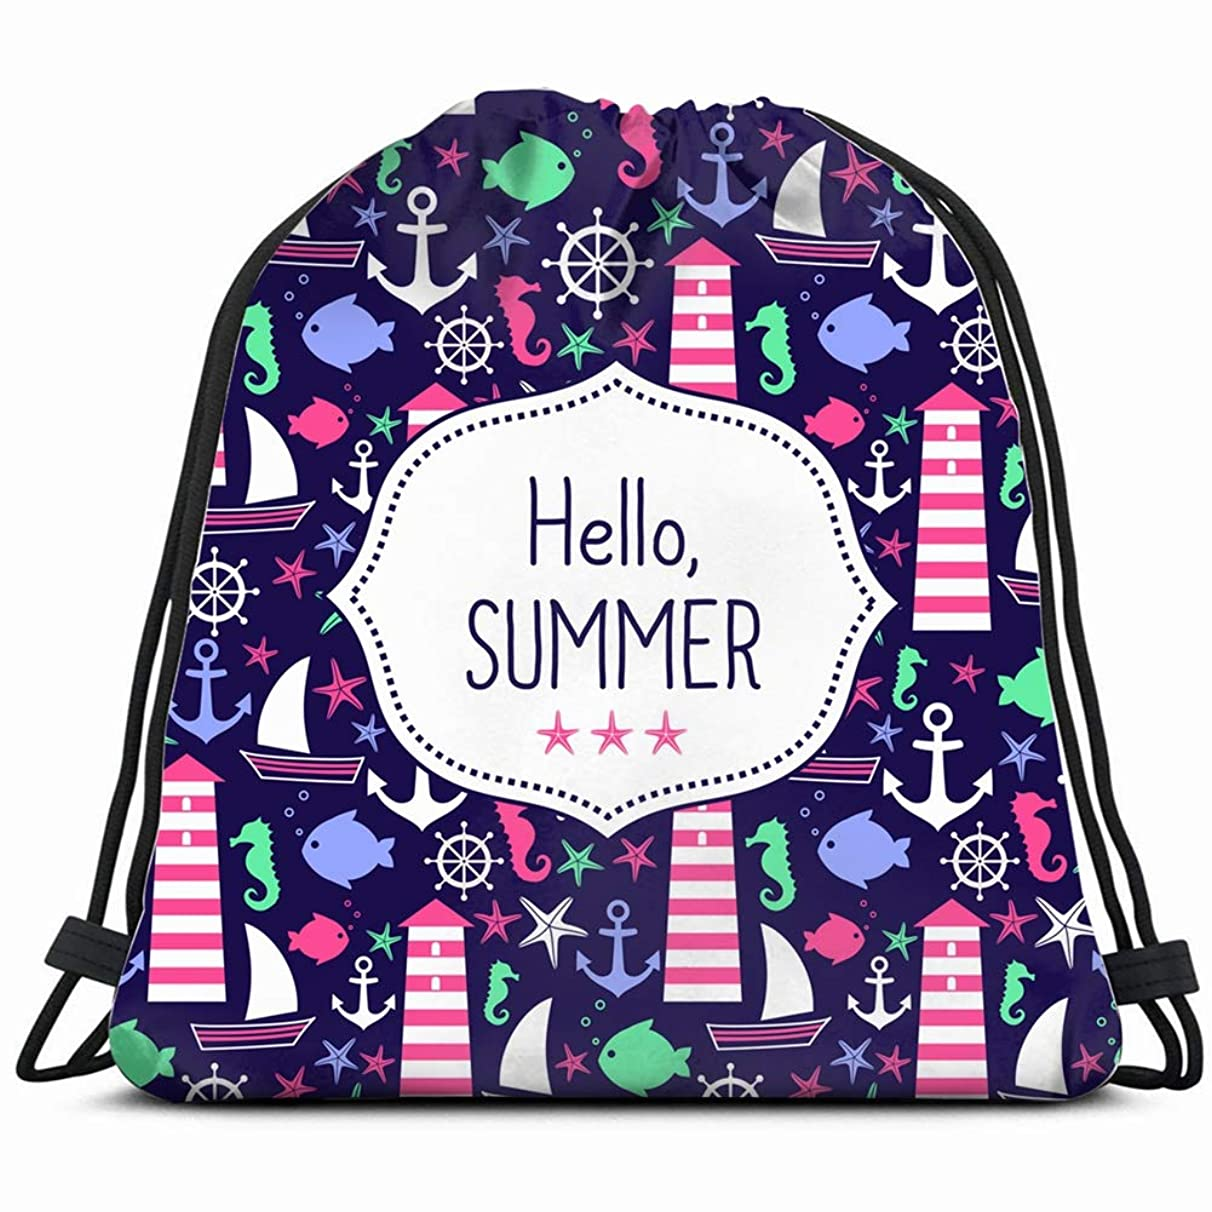 cute card hello summer navy nature Drawstring Backpack Gym Sack Lightweight Bag Water Resistant Gym Backpack for Women&Men for Sports,Travelling,Hiking,Camping,Shopping Yoga